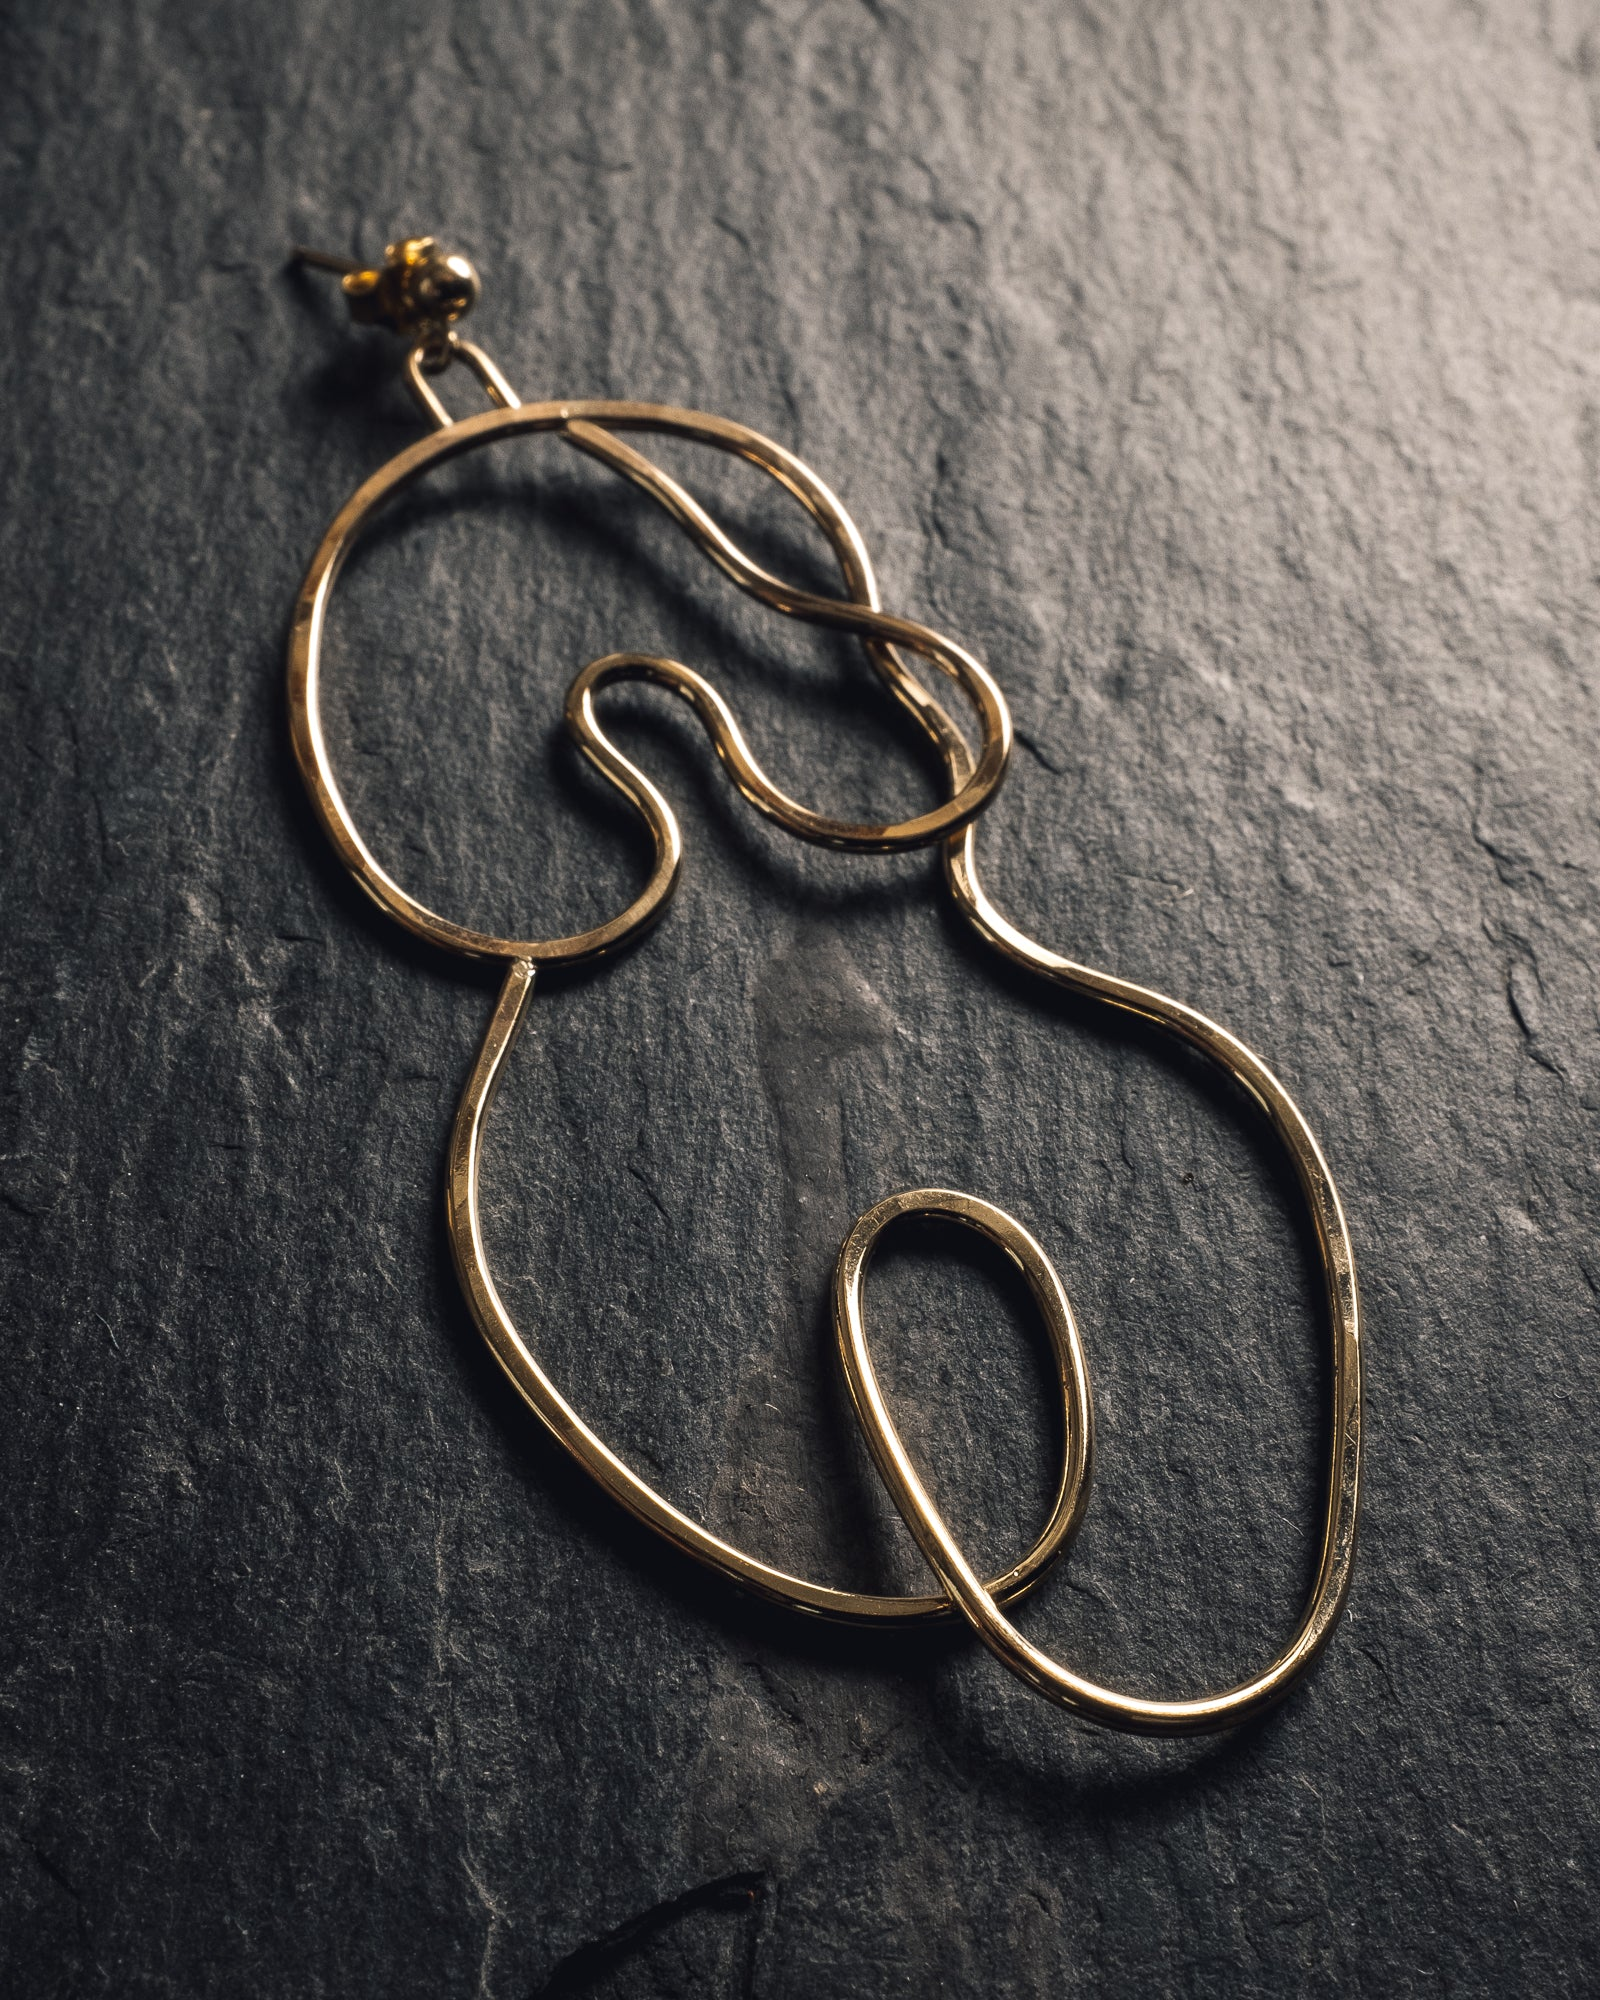 Knobbly Studio Nude No. 2 Earring, Large